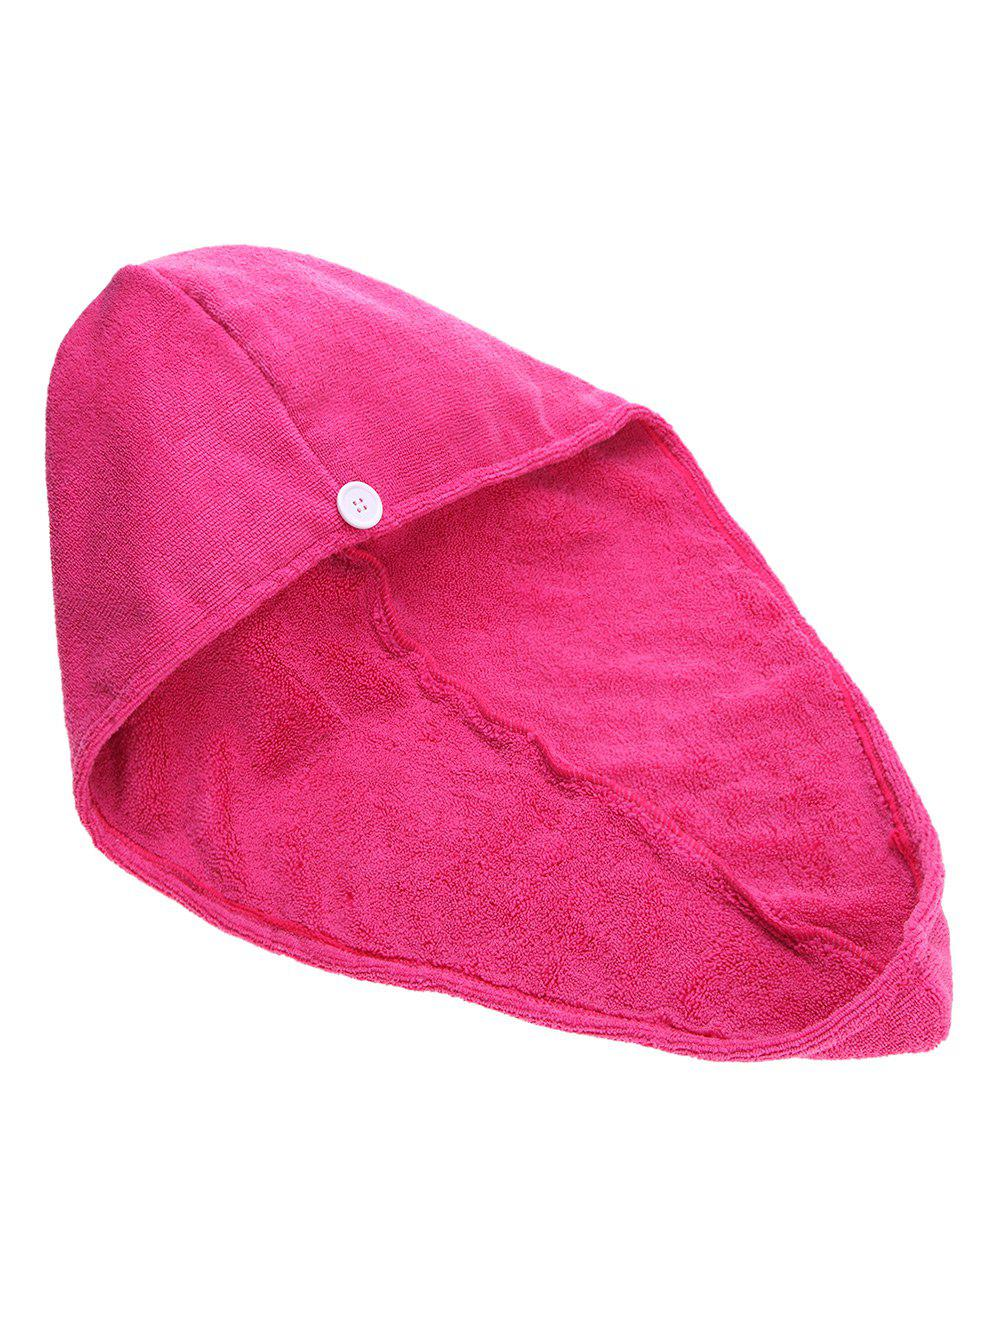 Quick Hair Drying Towel Absorbent Dry Hair Turban 246313703